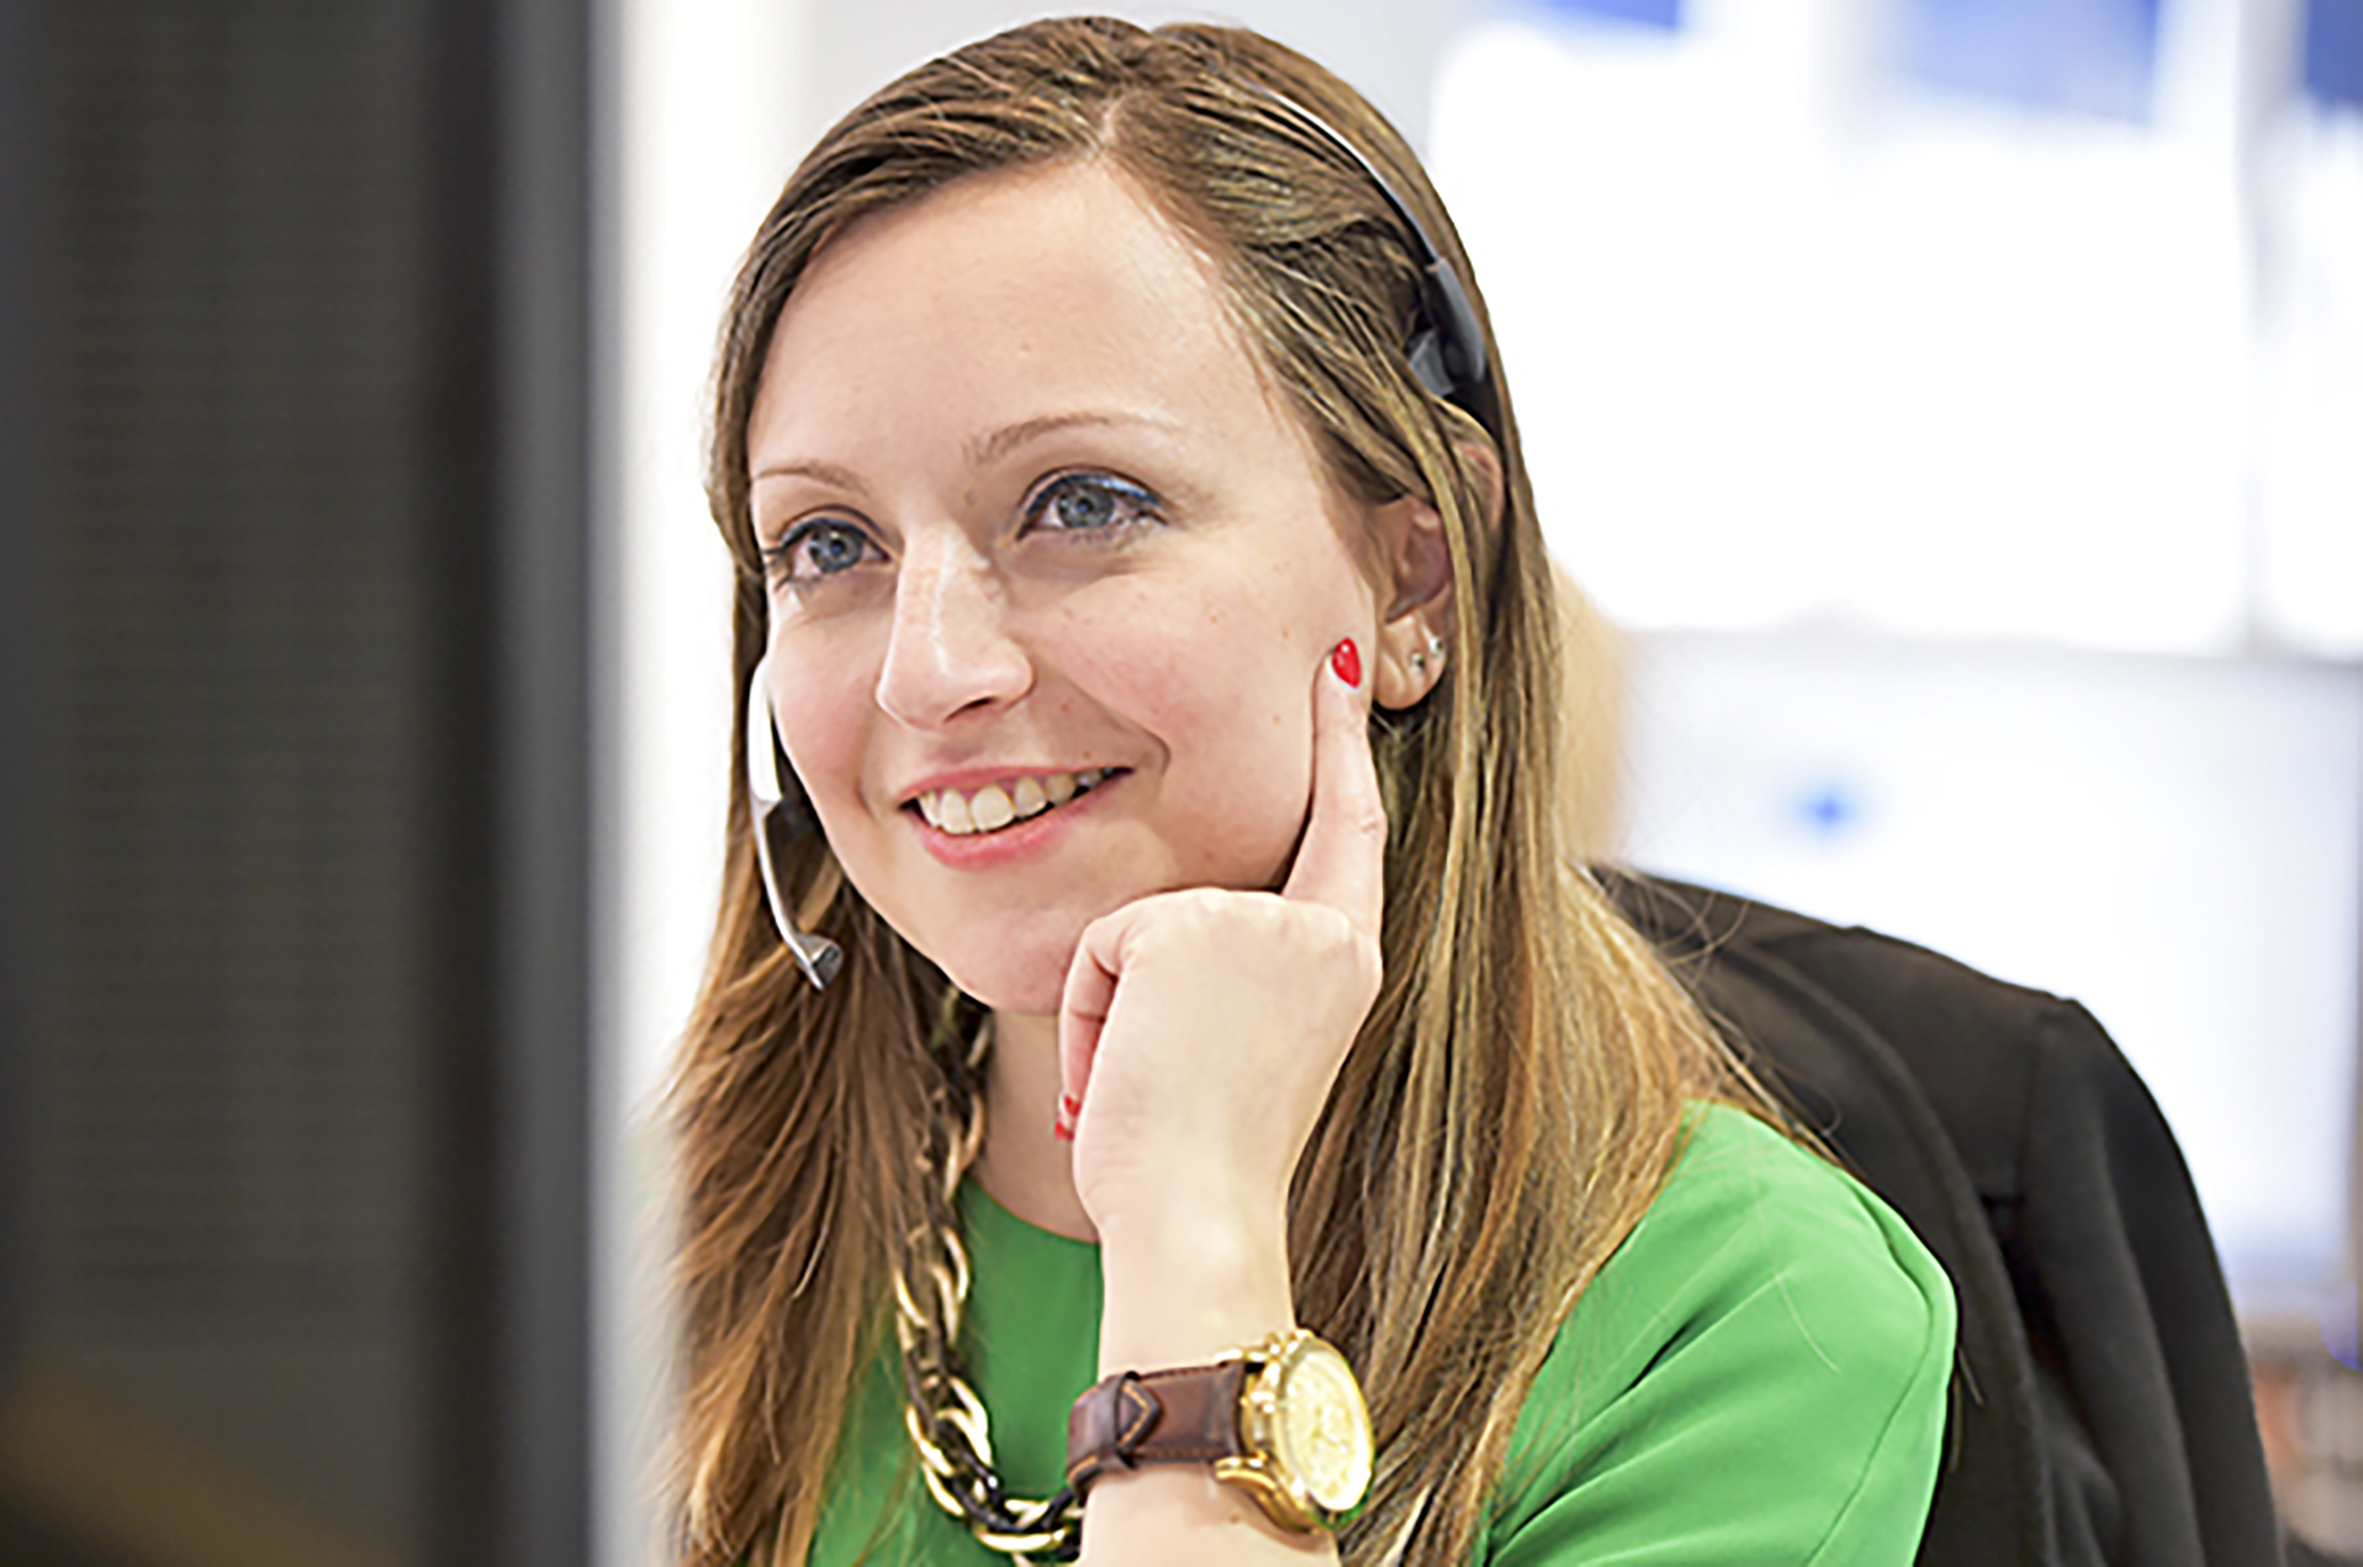 Smiling business woman with headset in London offices.